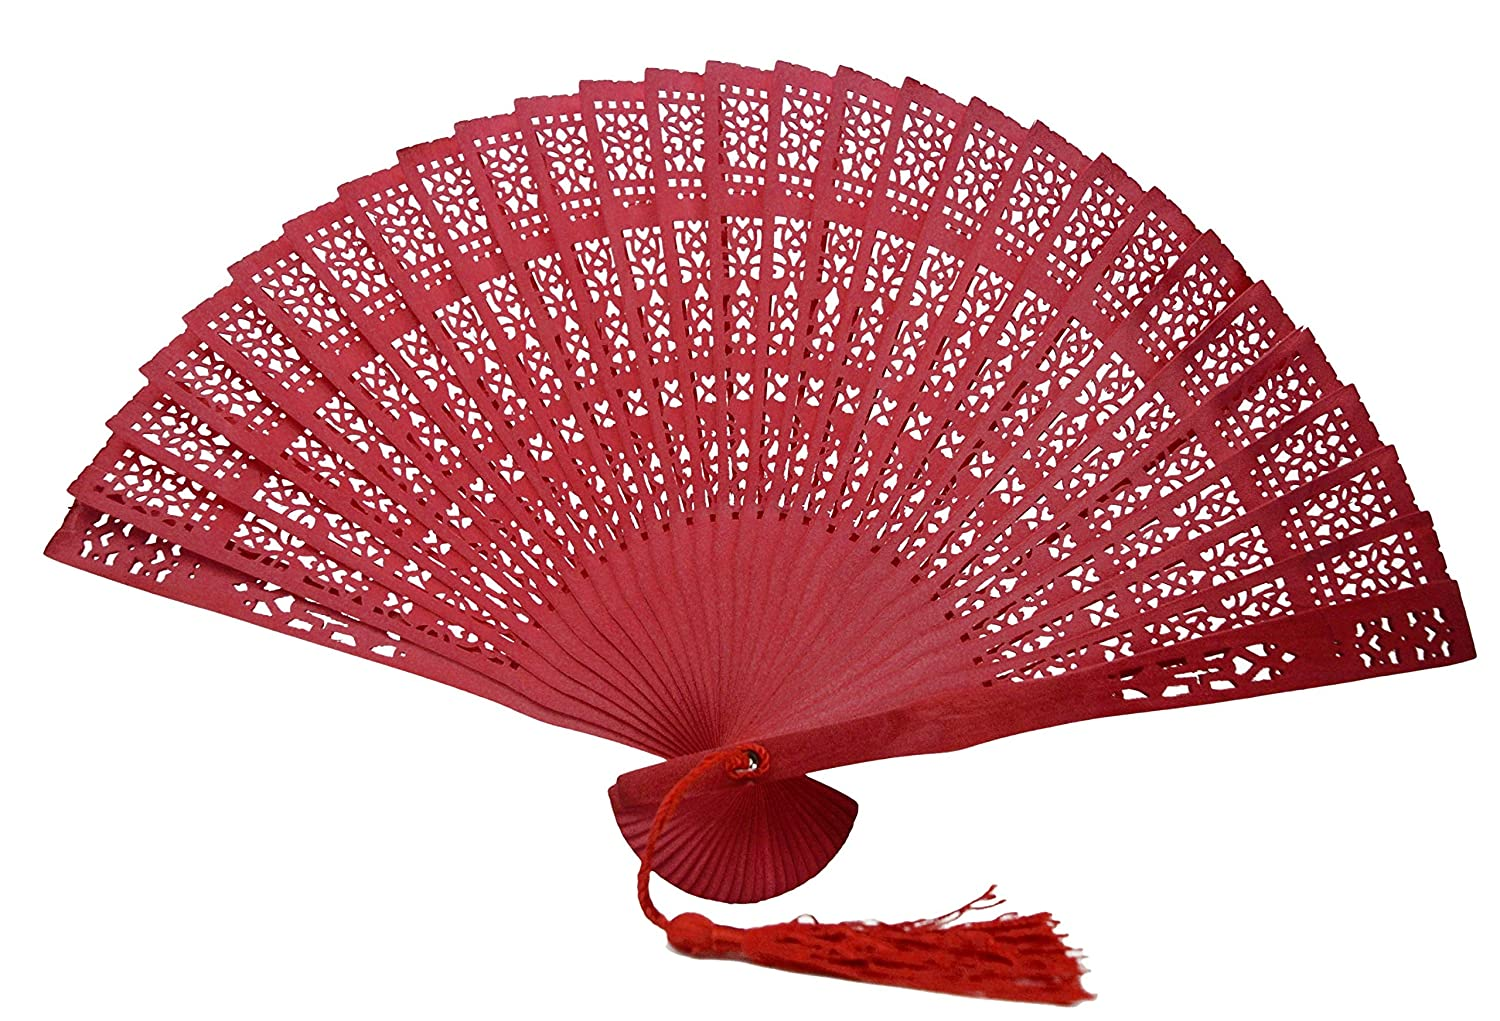 Wooden Red Colour Fragrant Hand Fans: Amazon.co.uk: Toys & Games